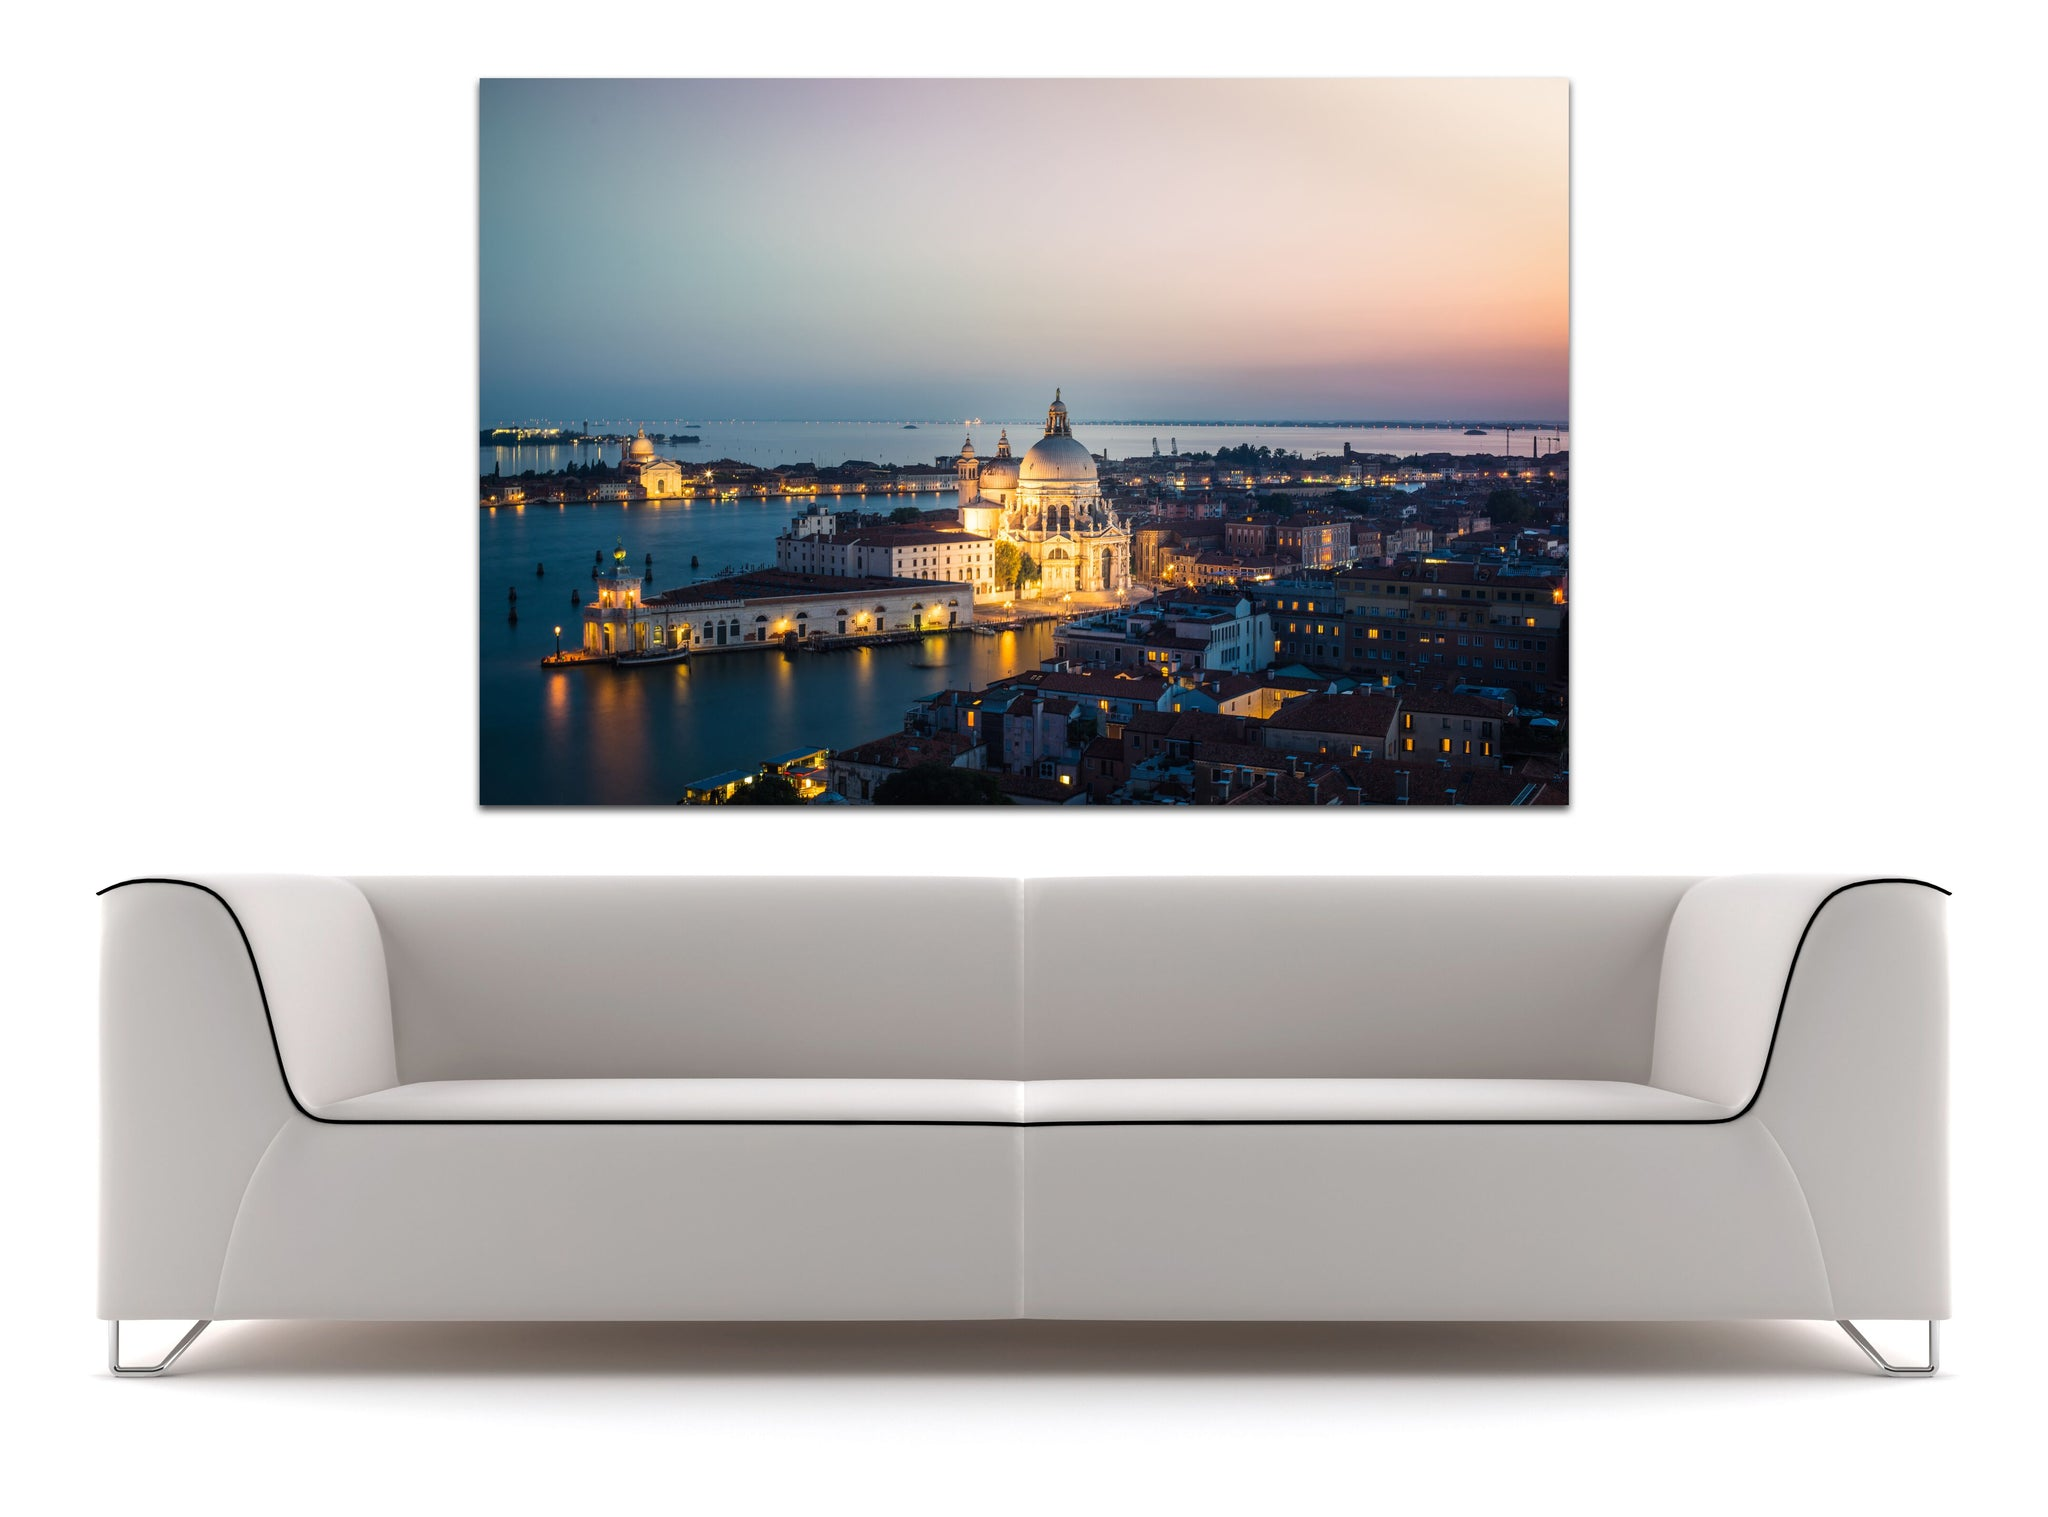 Venice Italy Grand Canal Sunset Skyline Canvas Photography Metal Print Wall Art Picture Home Decor Poster Landmark Bedroom Livingroom